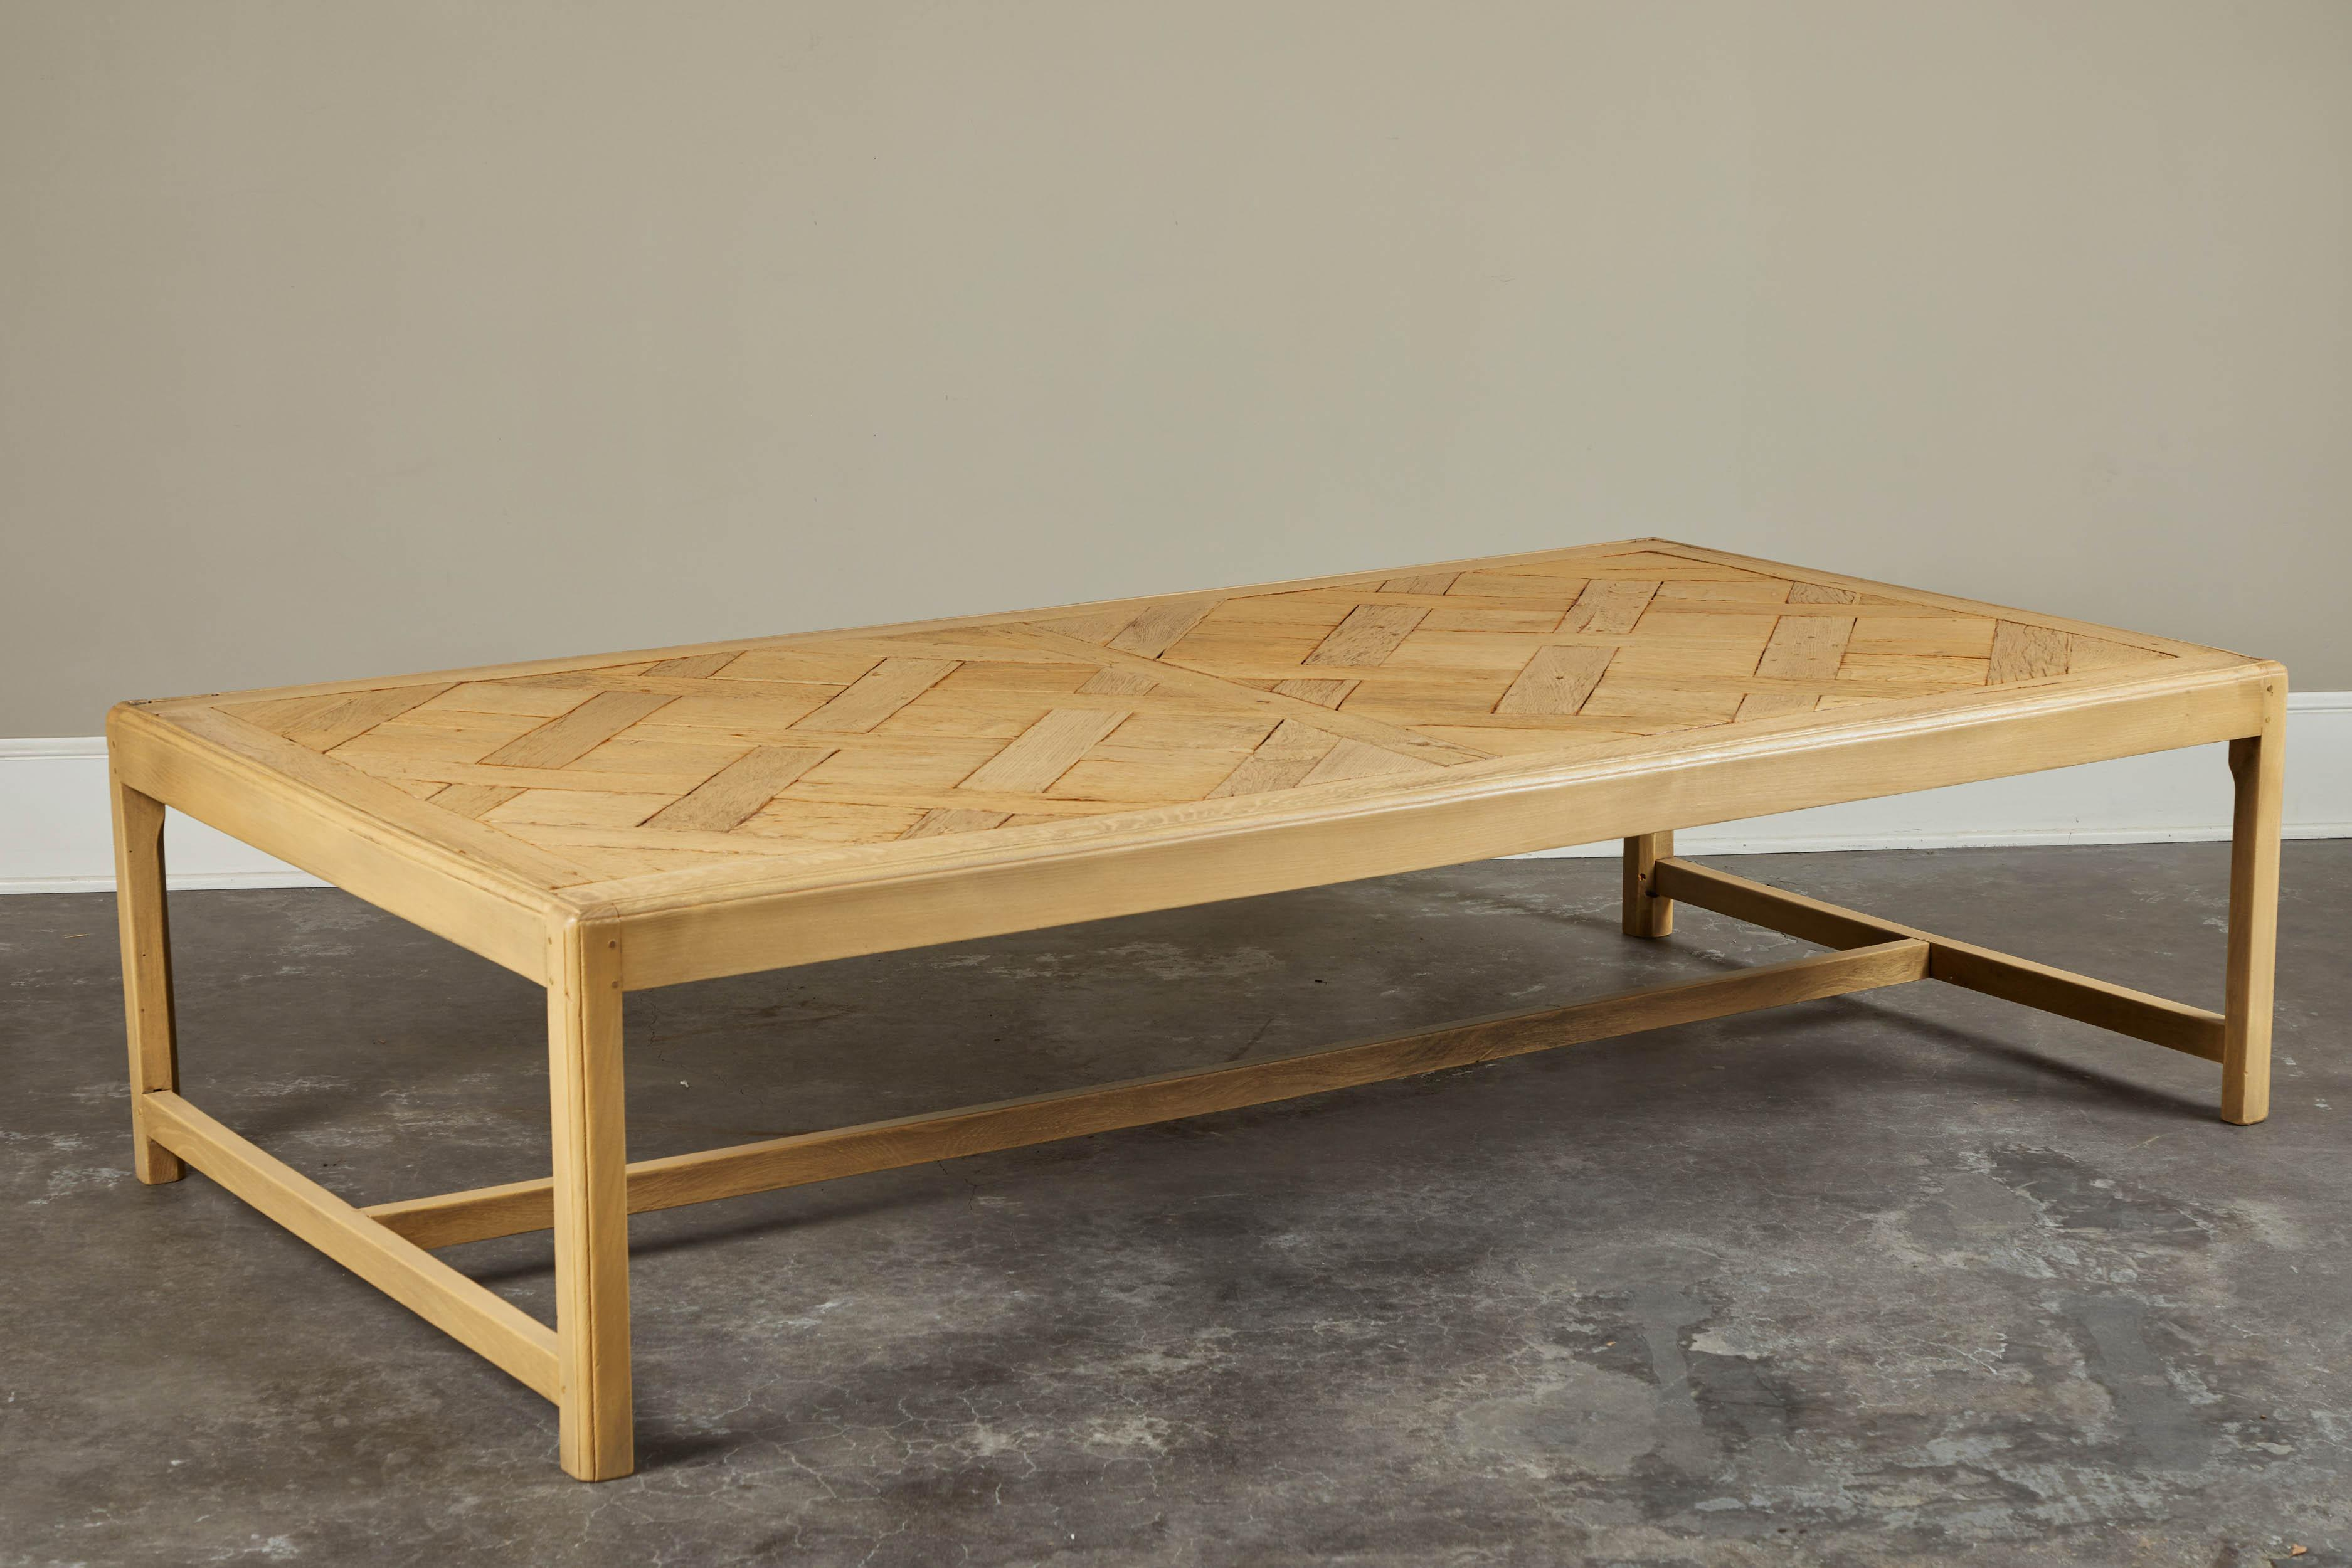 20th C. French Parquet Bleached Oak Coffee Table